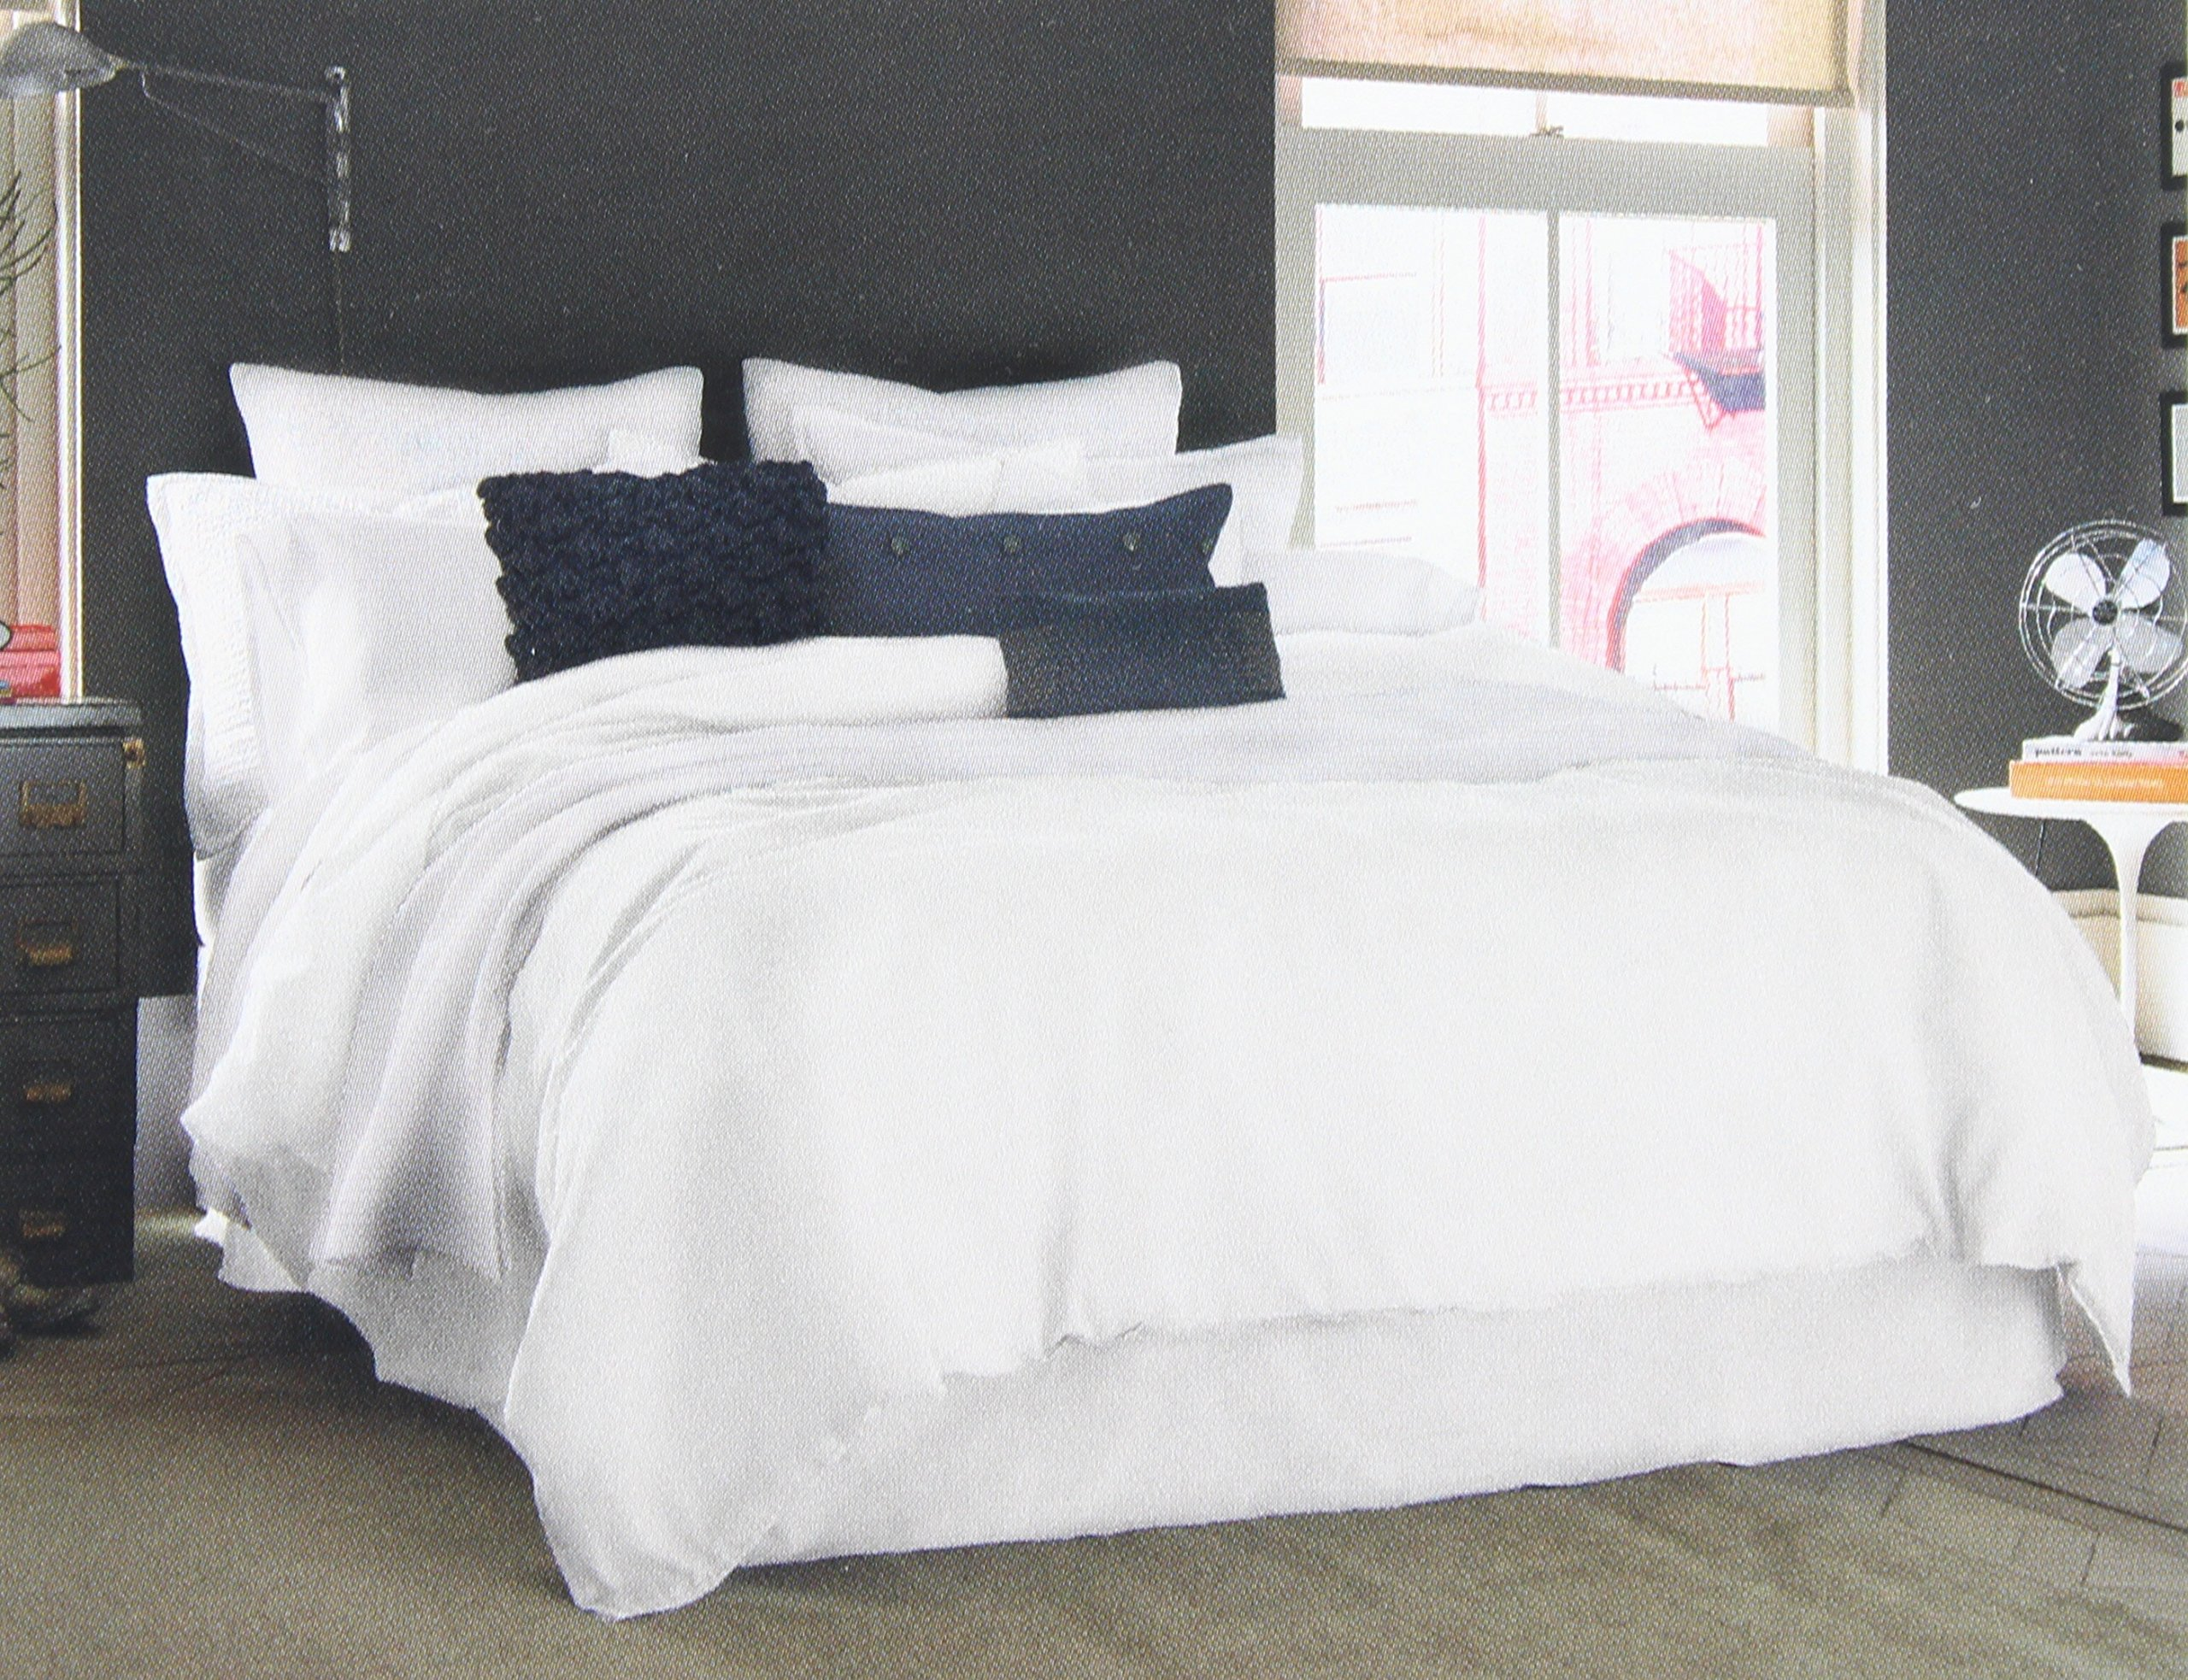 Kenneth Cole Reaction Home King Sized Duvet Cover from the Mineral Bedding Collection in a White Color